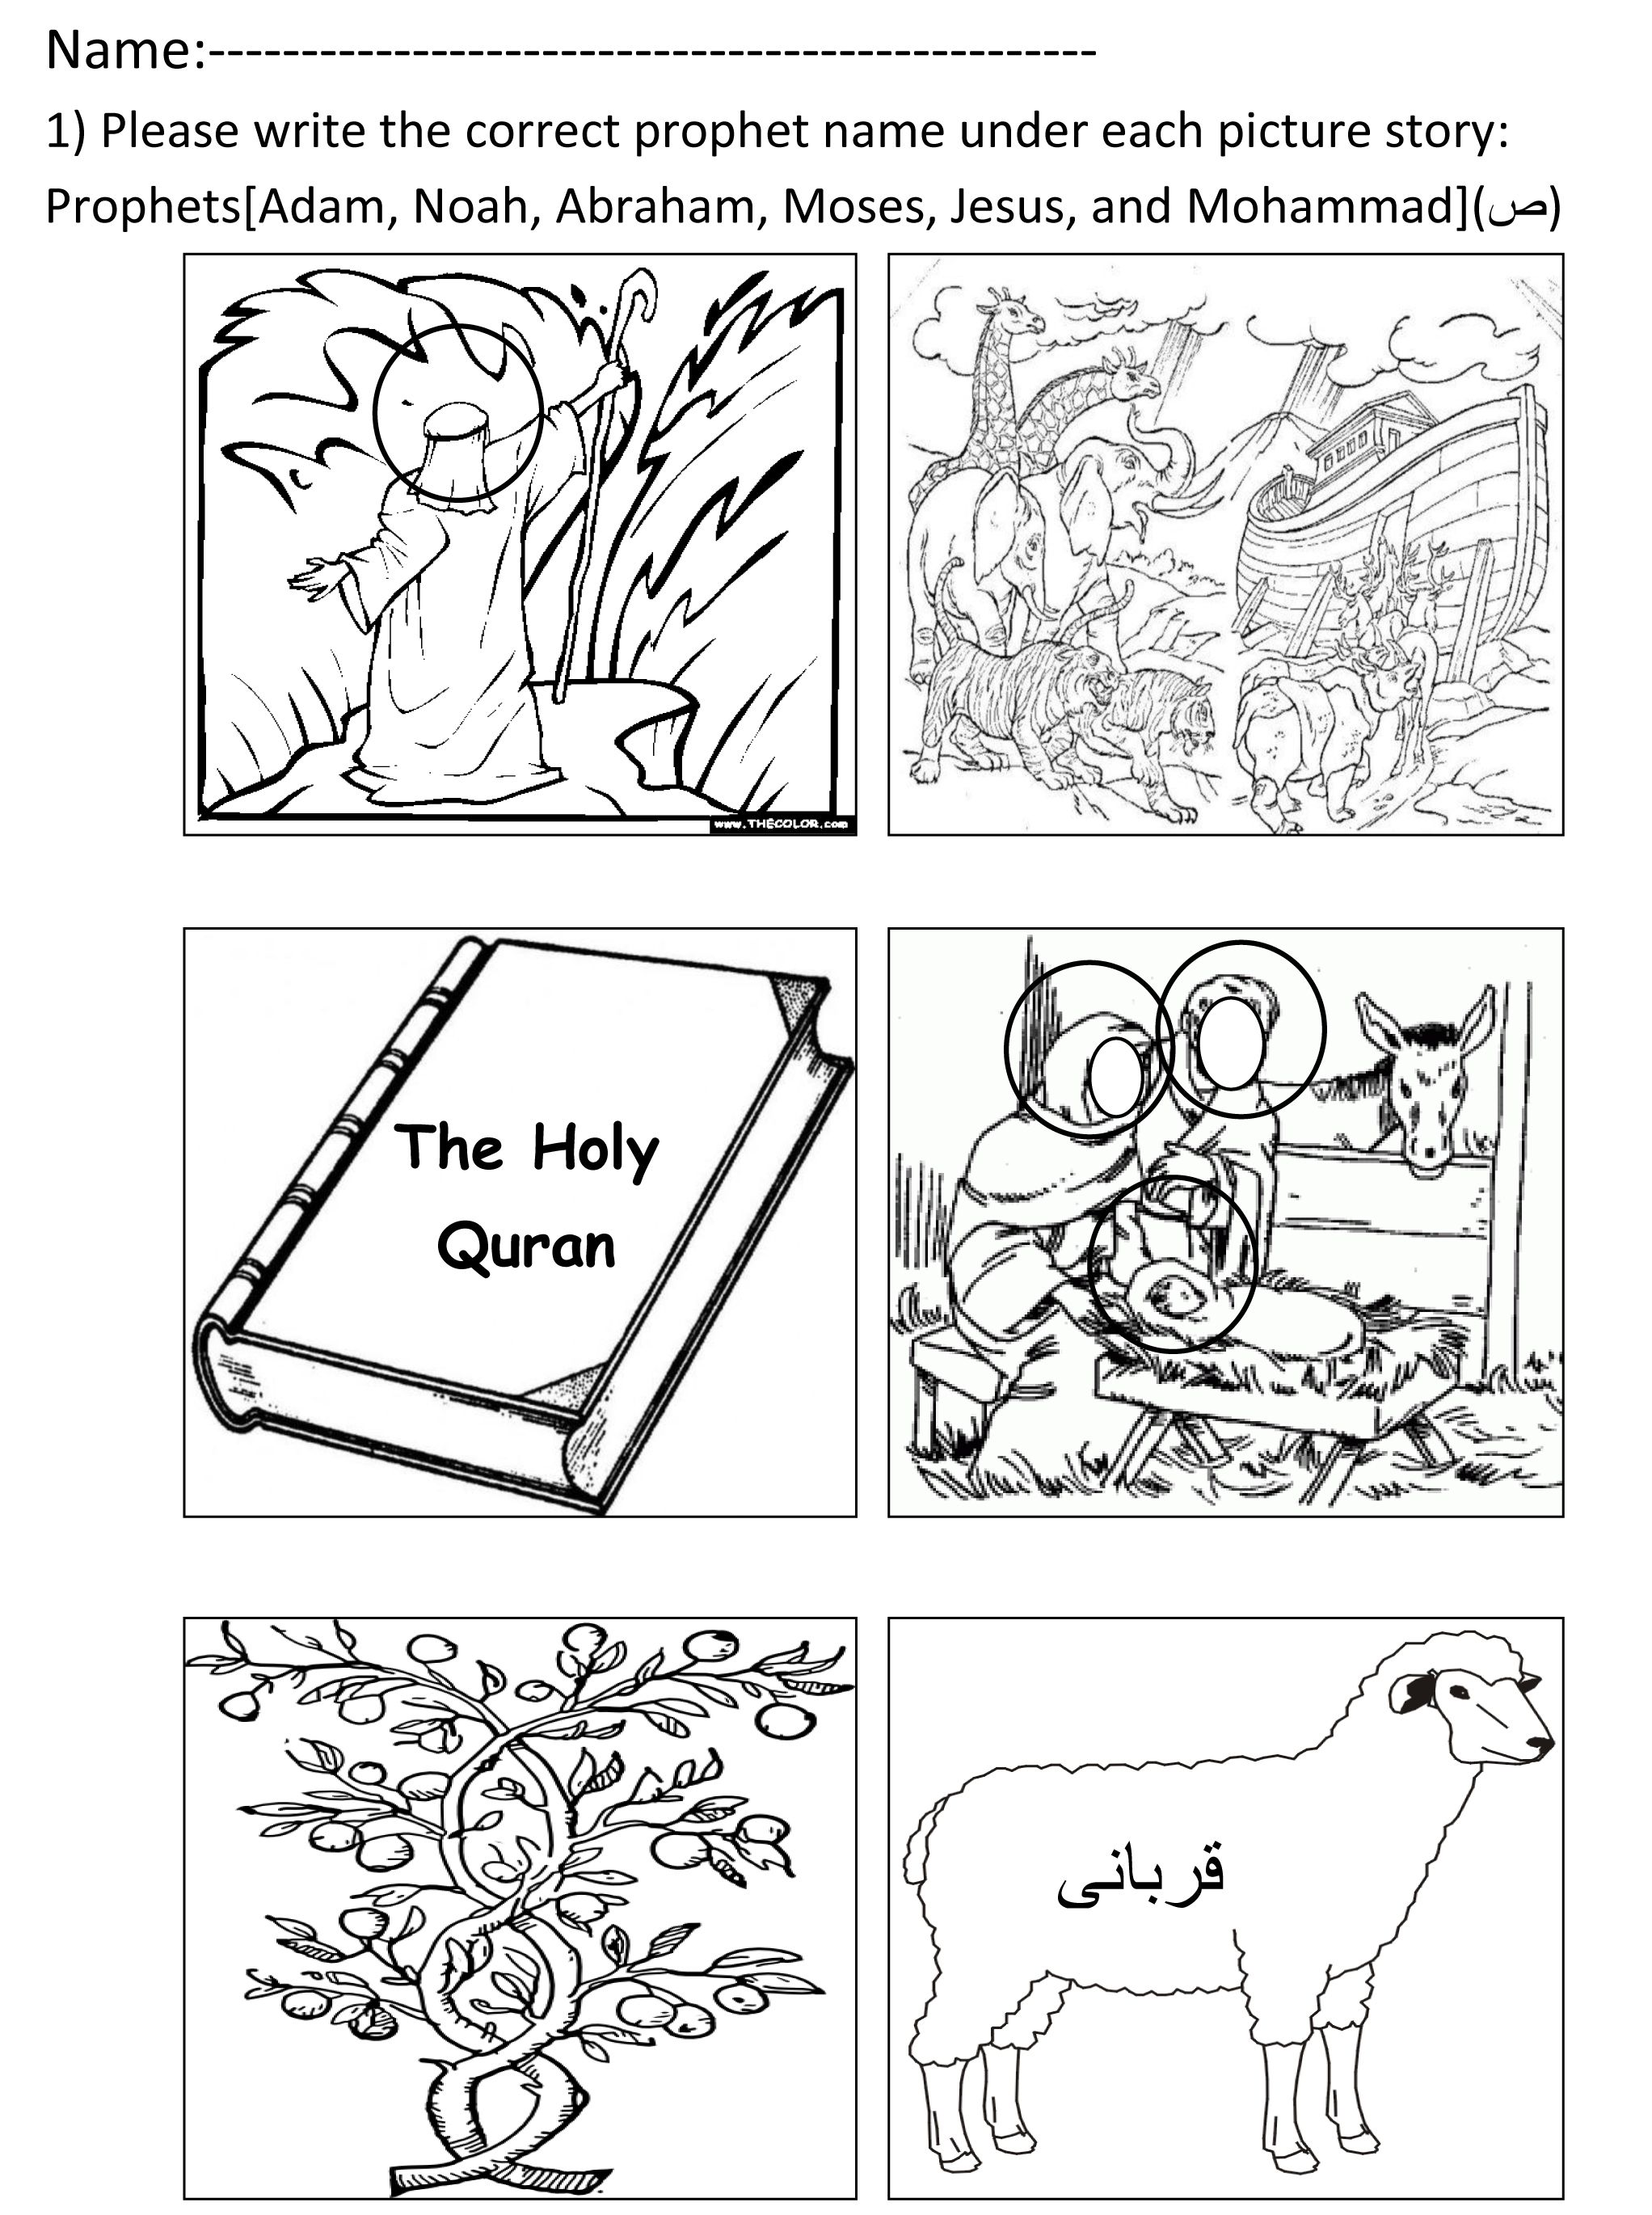 Name That Prophet Picture Story Worksheet